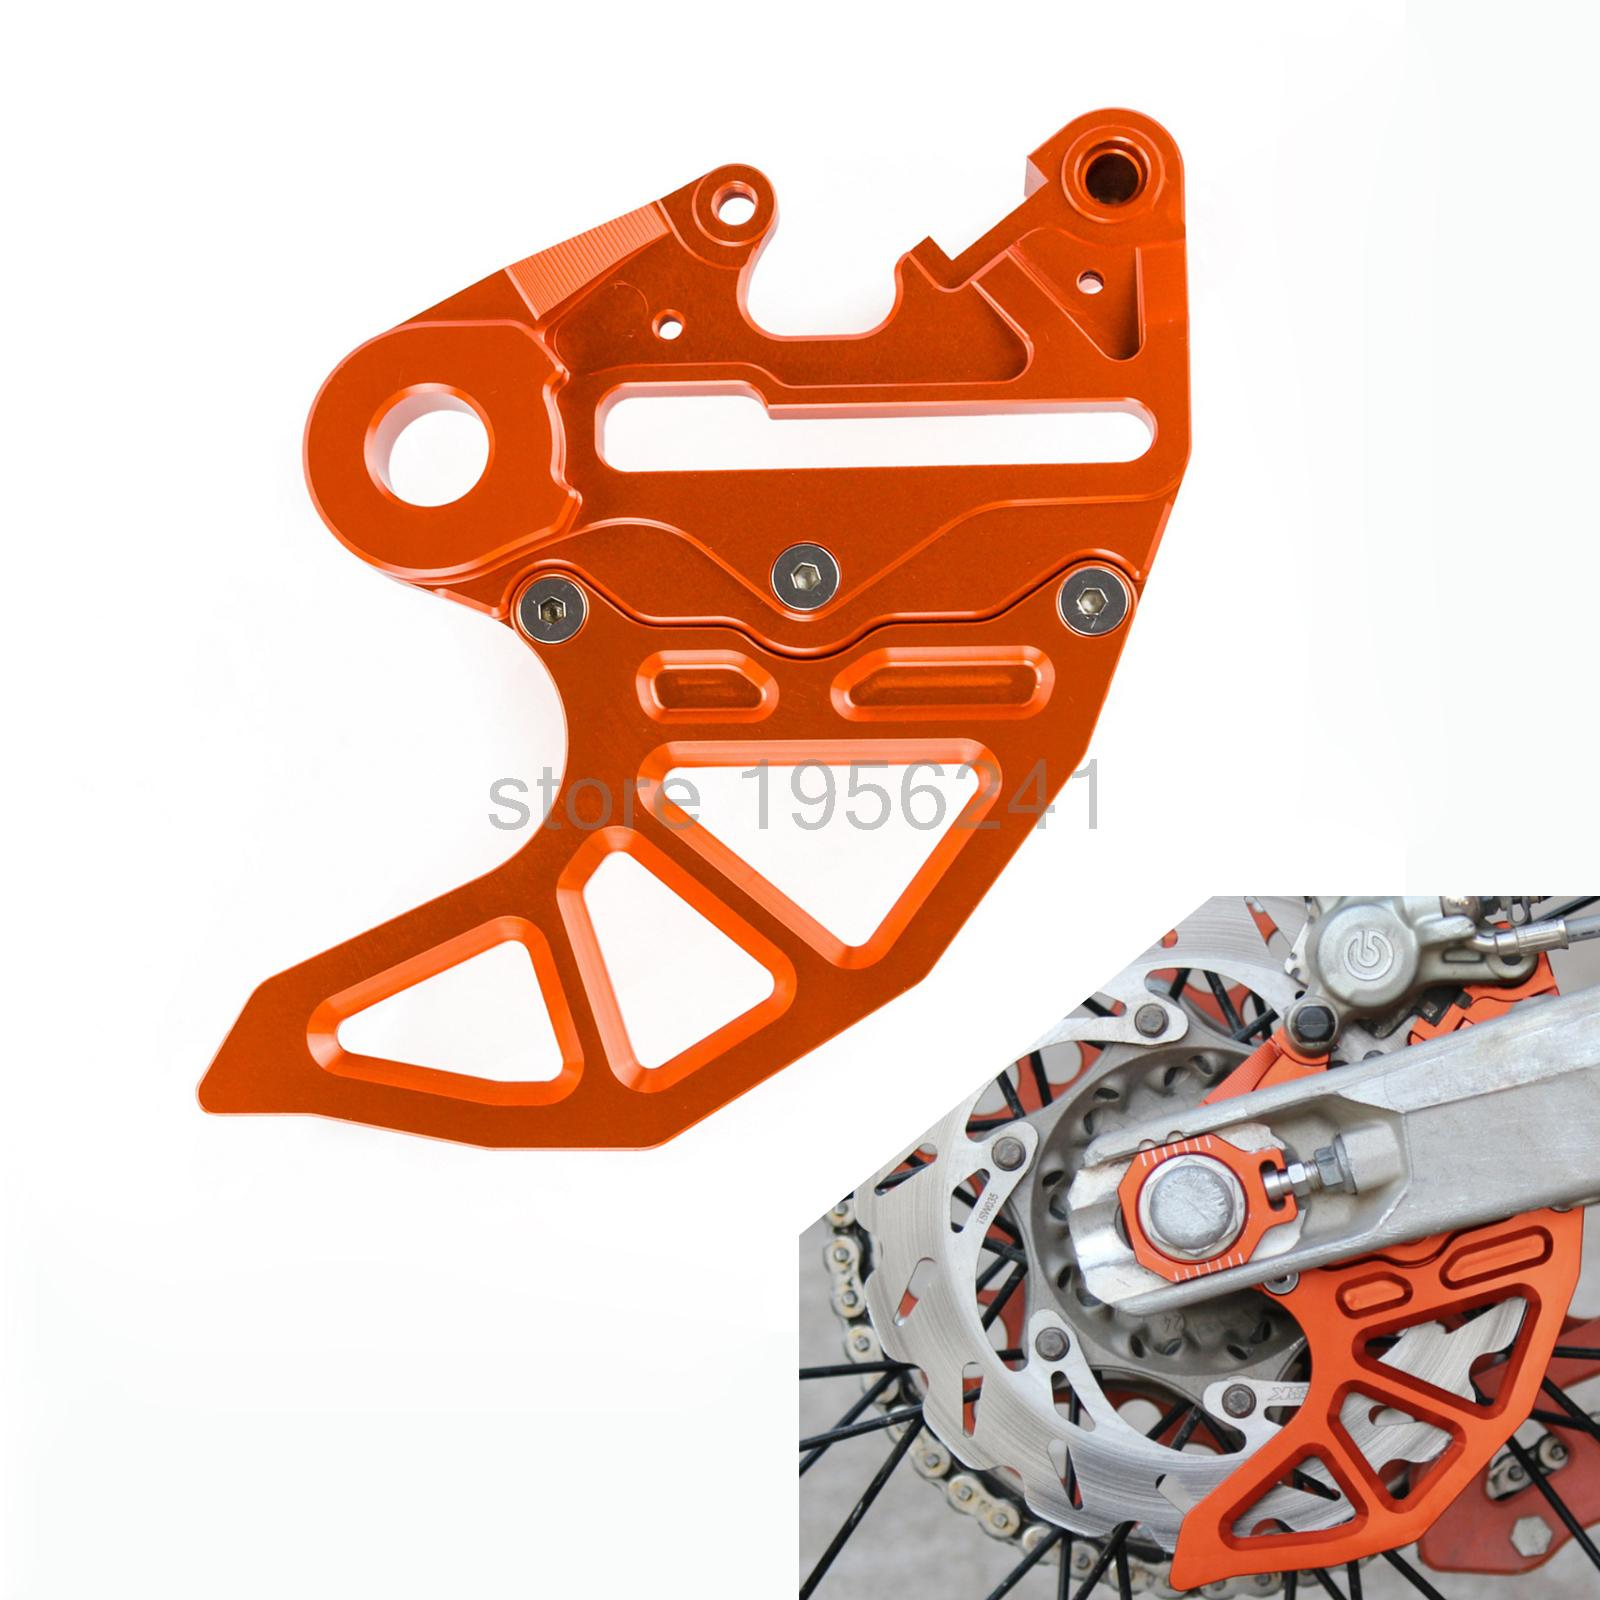 Billet CNC Rear Brake Disc Guard W/ Caliper Bracket for KTM 125-450 SX/SX-F/SMR/XC/XC-F 2013-2016 billet cnc rear brake disc guard w caliper bracket for ktm 125 450 sx sx f smr xc xc f 2013 2014 2015 2016